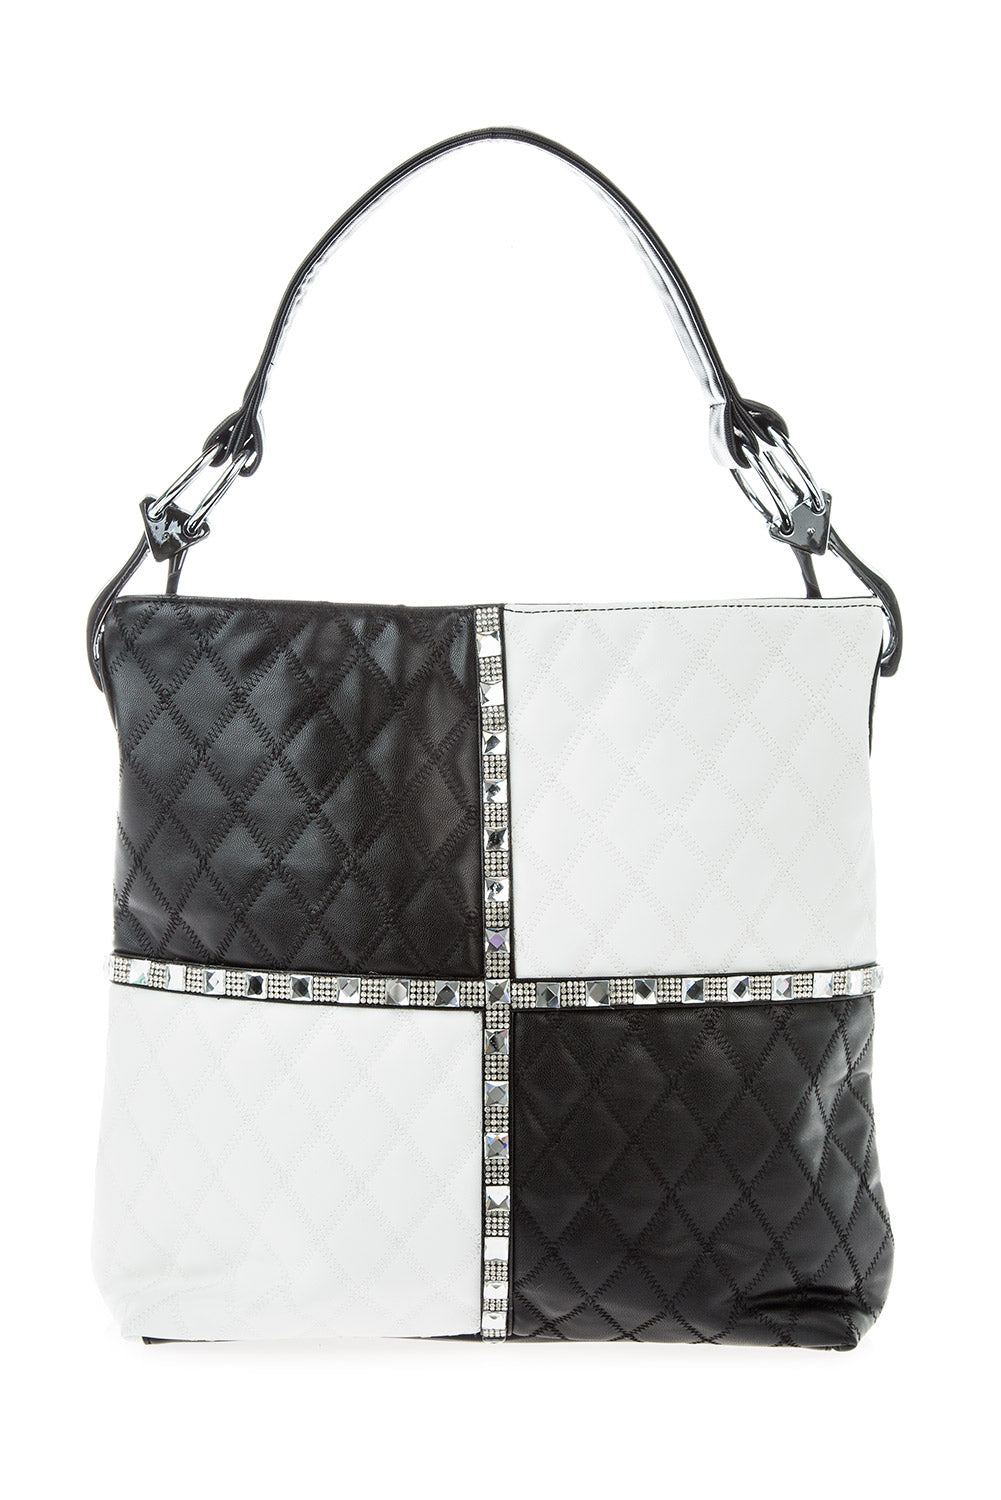 Type 4 Checkmate Handbag